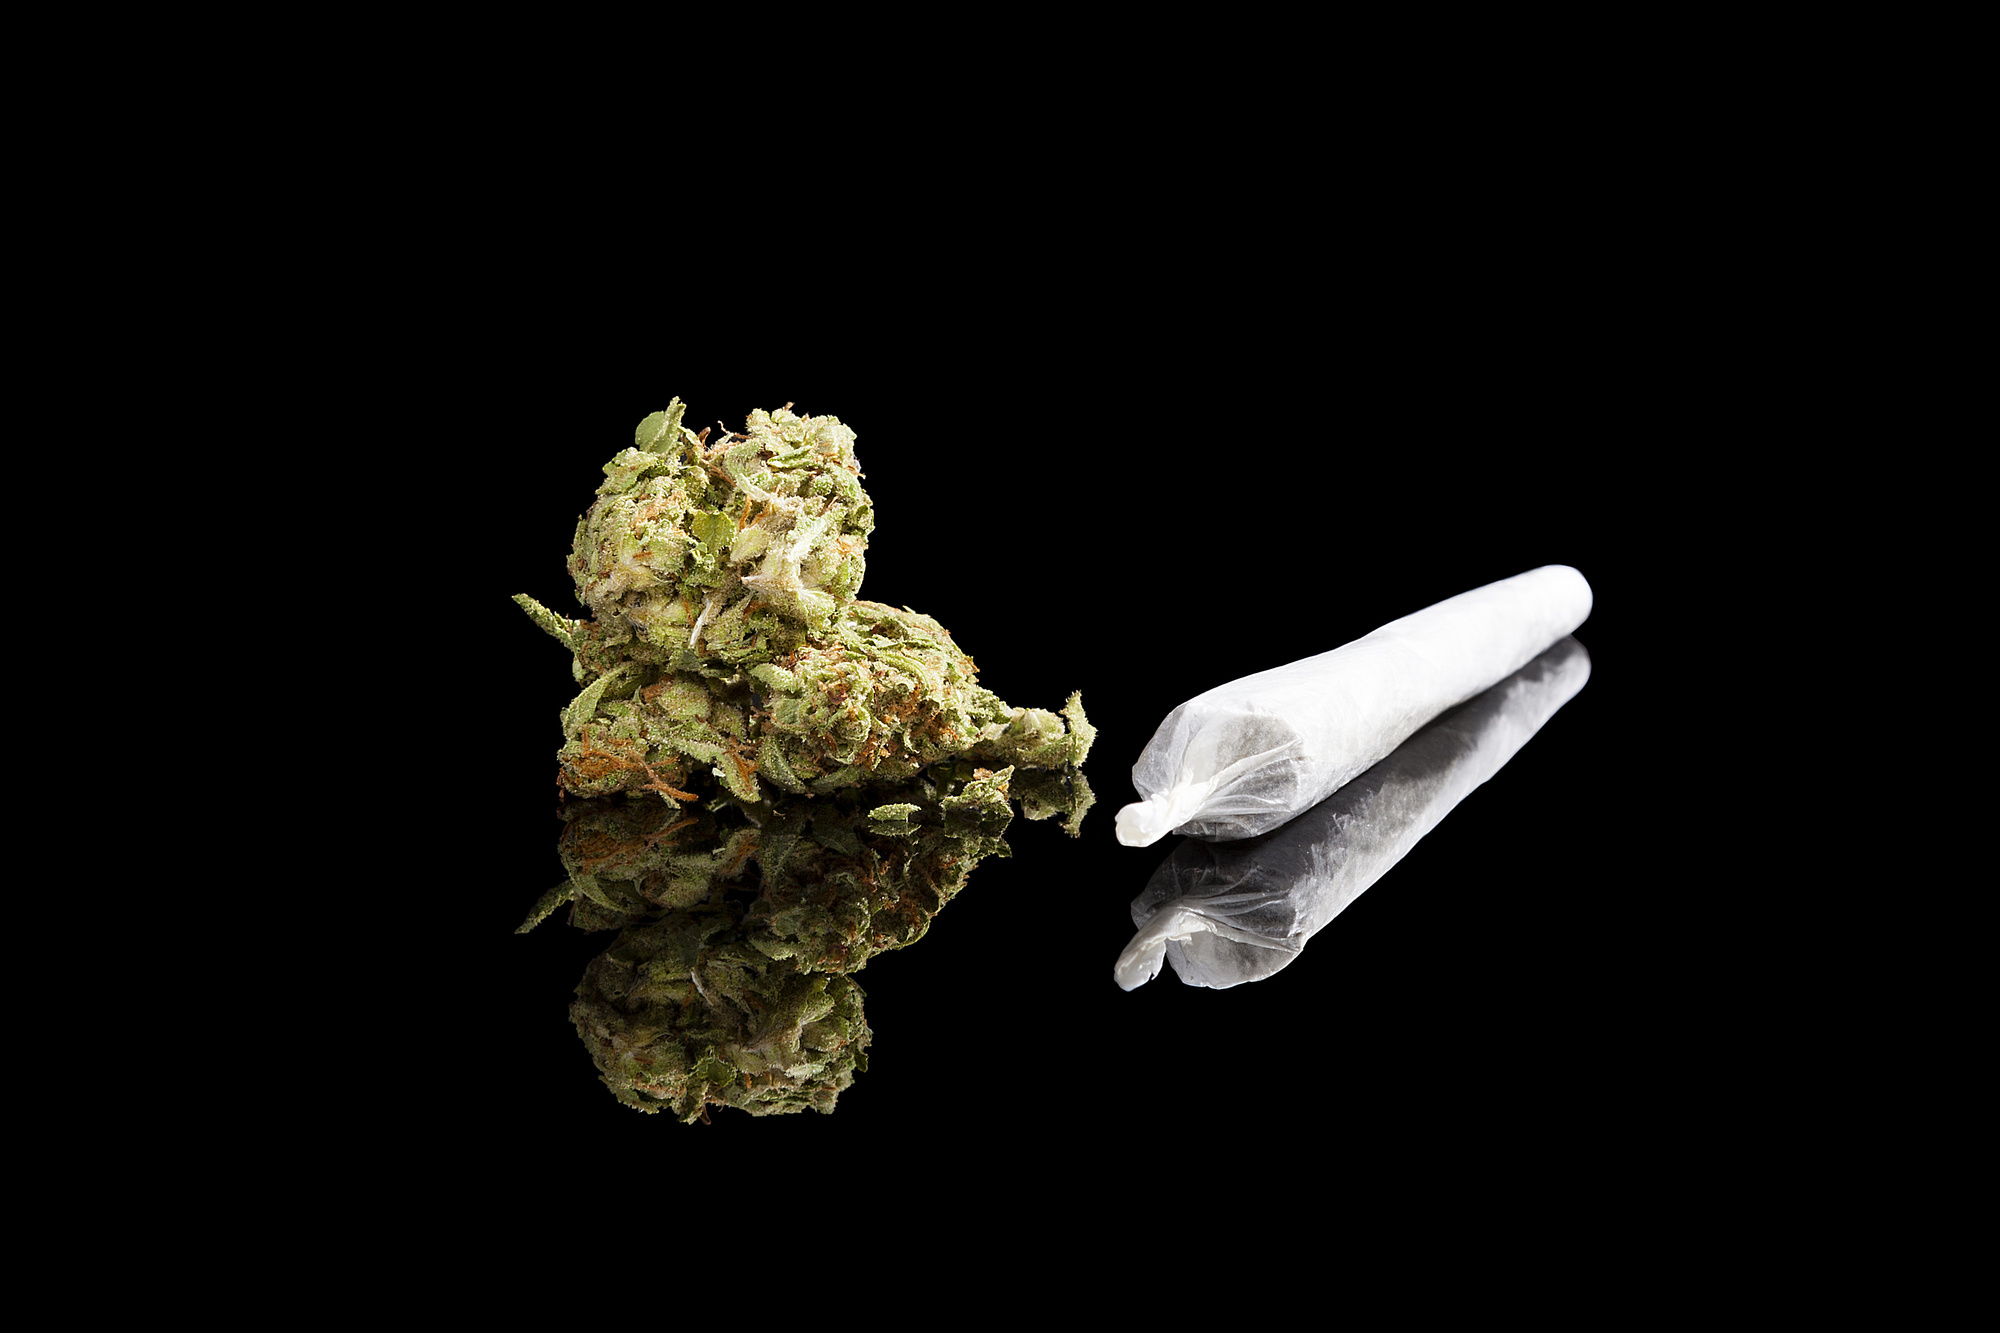 Celebrate The Classy Cannabis Lover With These Stoner Gift Ideas